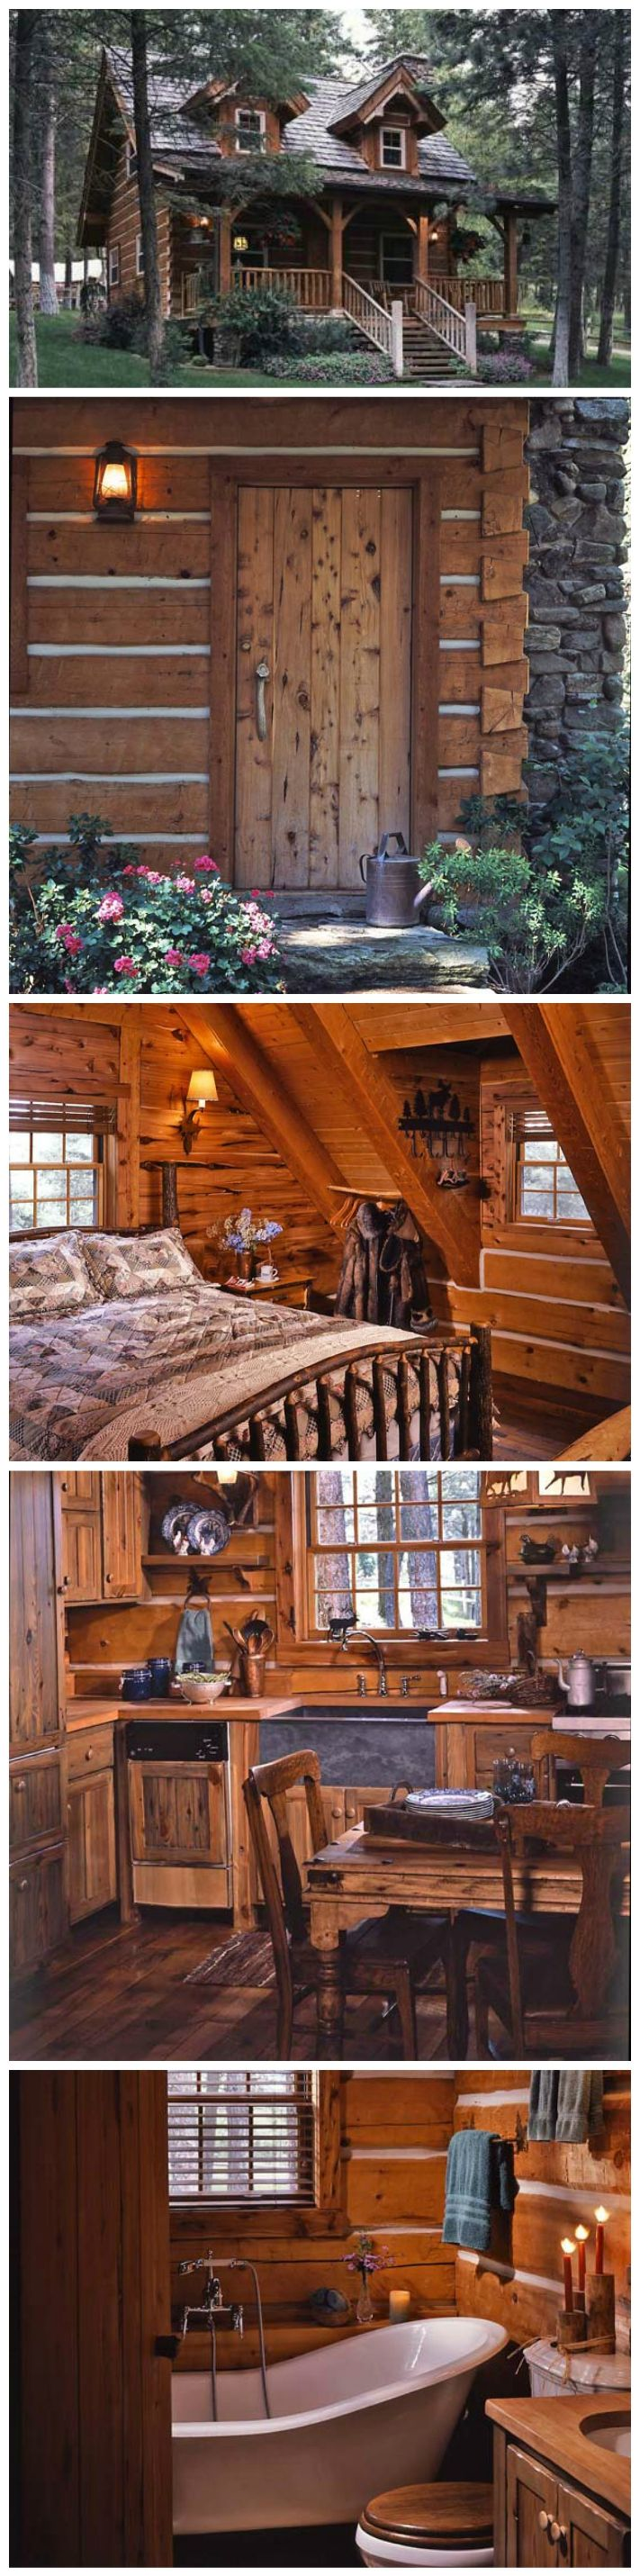 170 best log cabins images on pinterest cottage log homes and